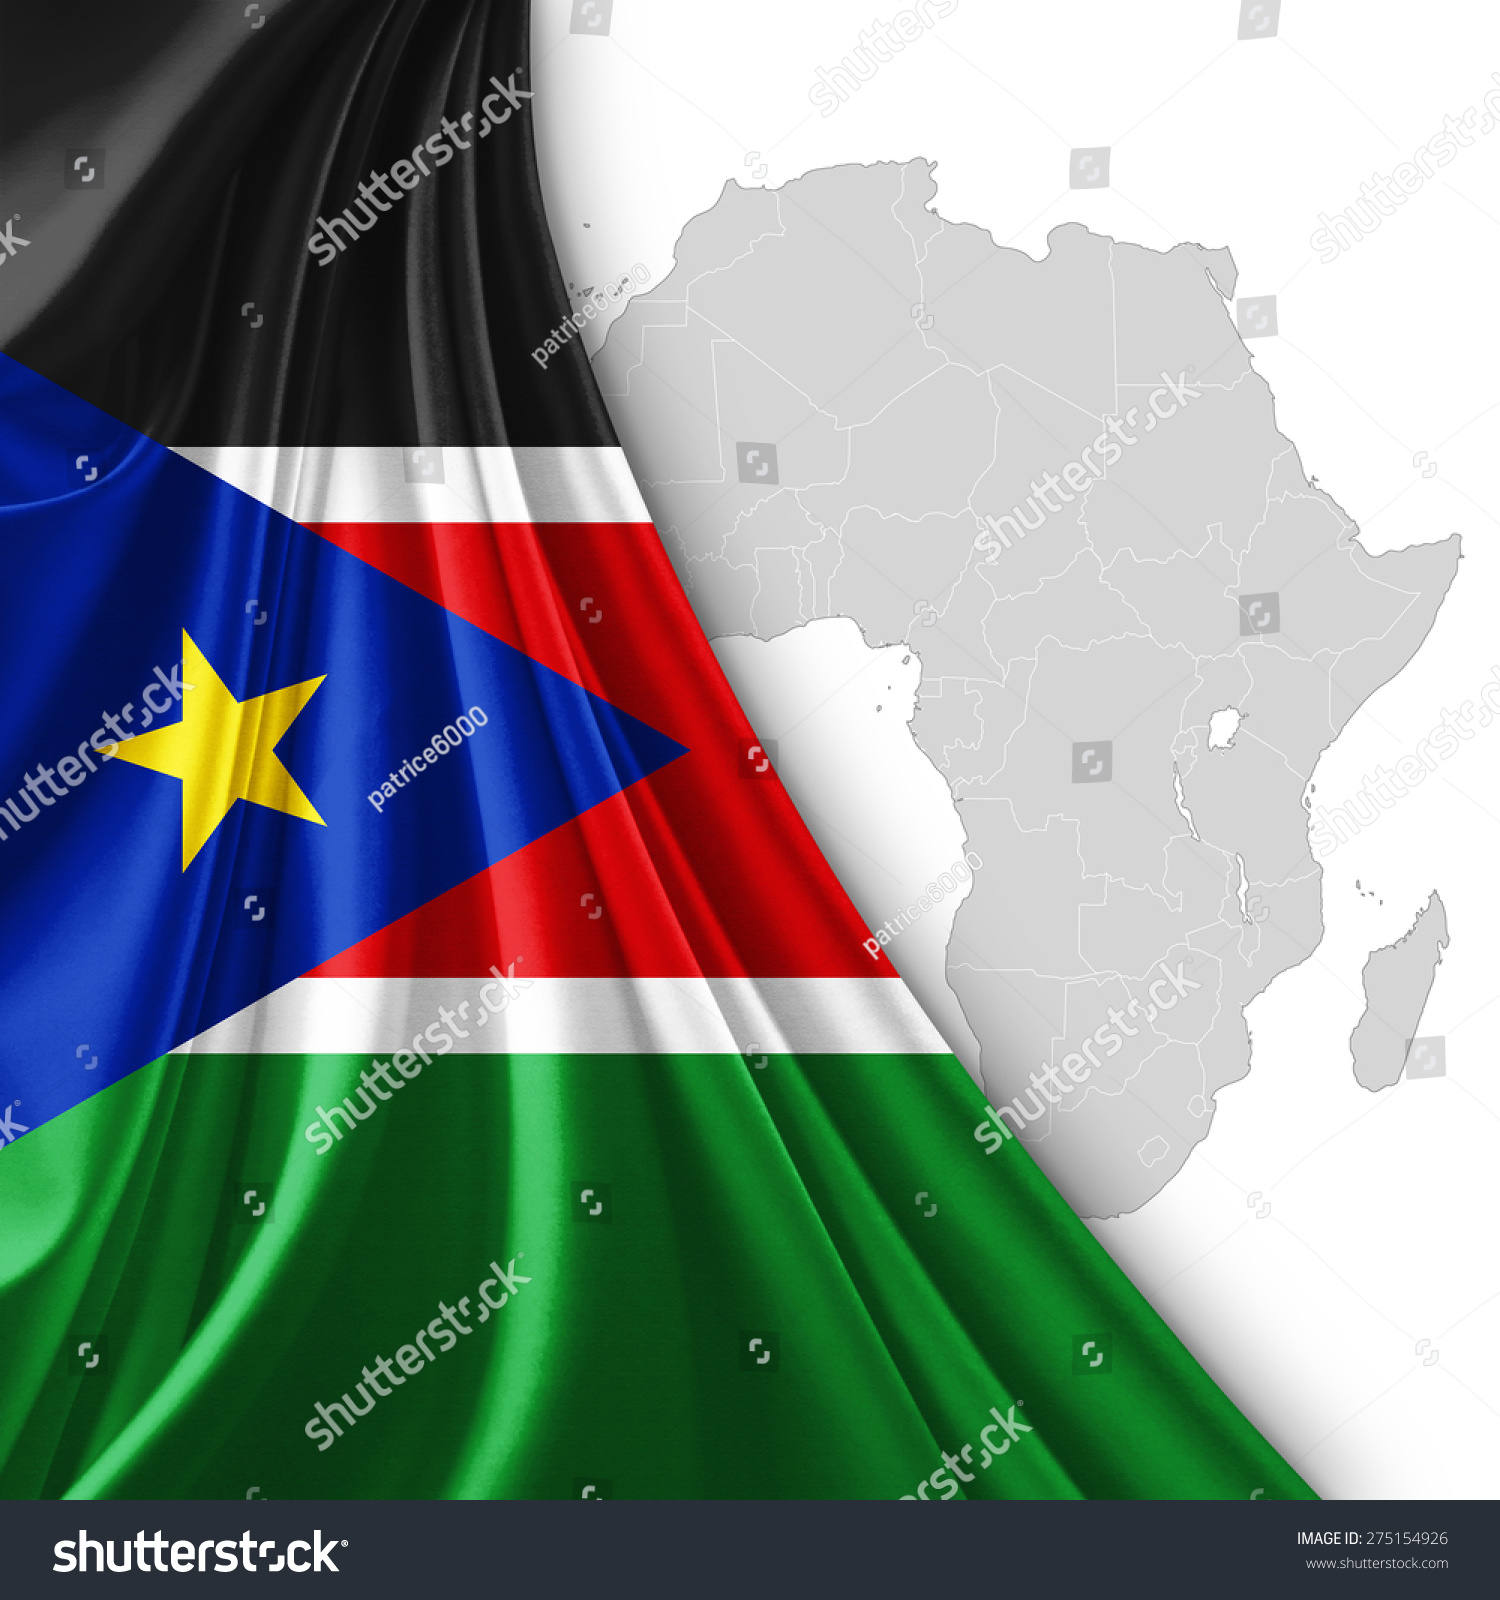 Royalty Free Stock Illustration of South Sudan Flag Silk Africa Map ...